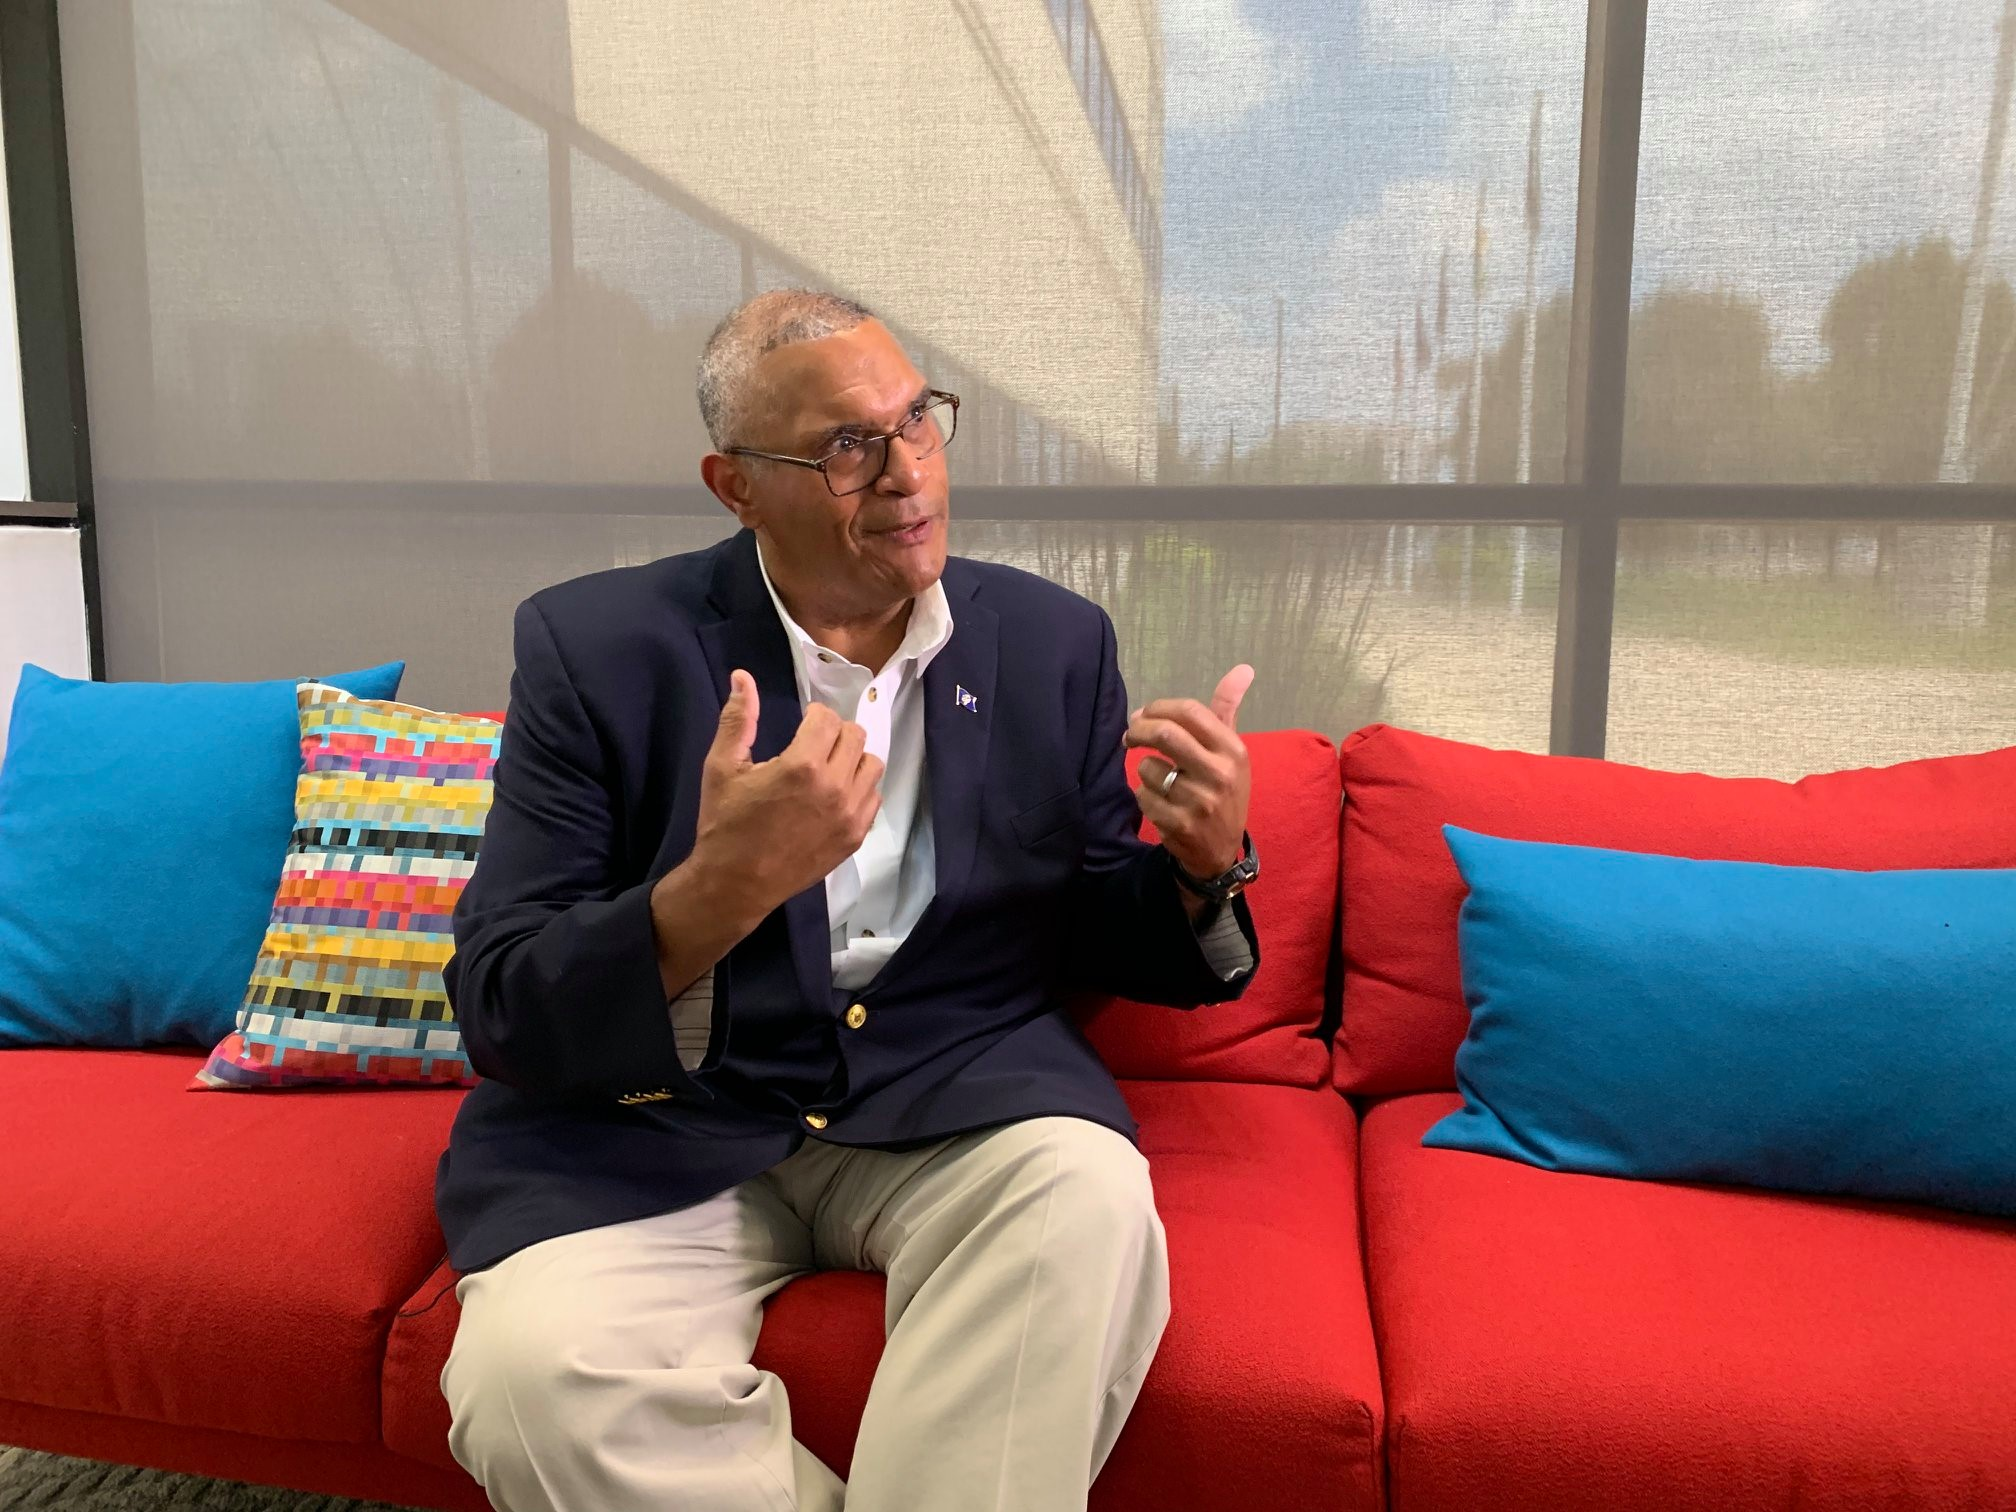 Indiana Democratic gubernatorial candidate Woody Myers sits on a couch